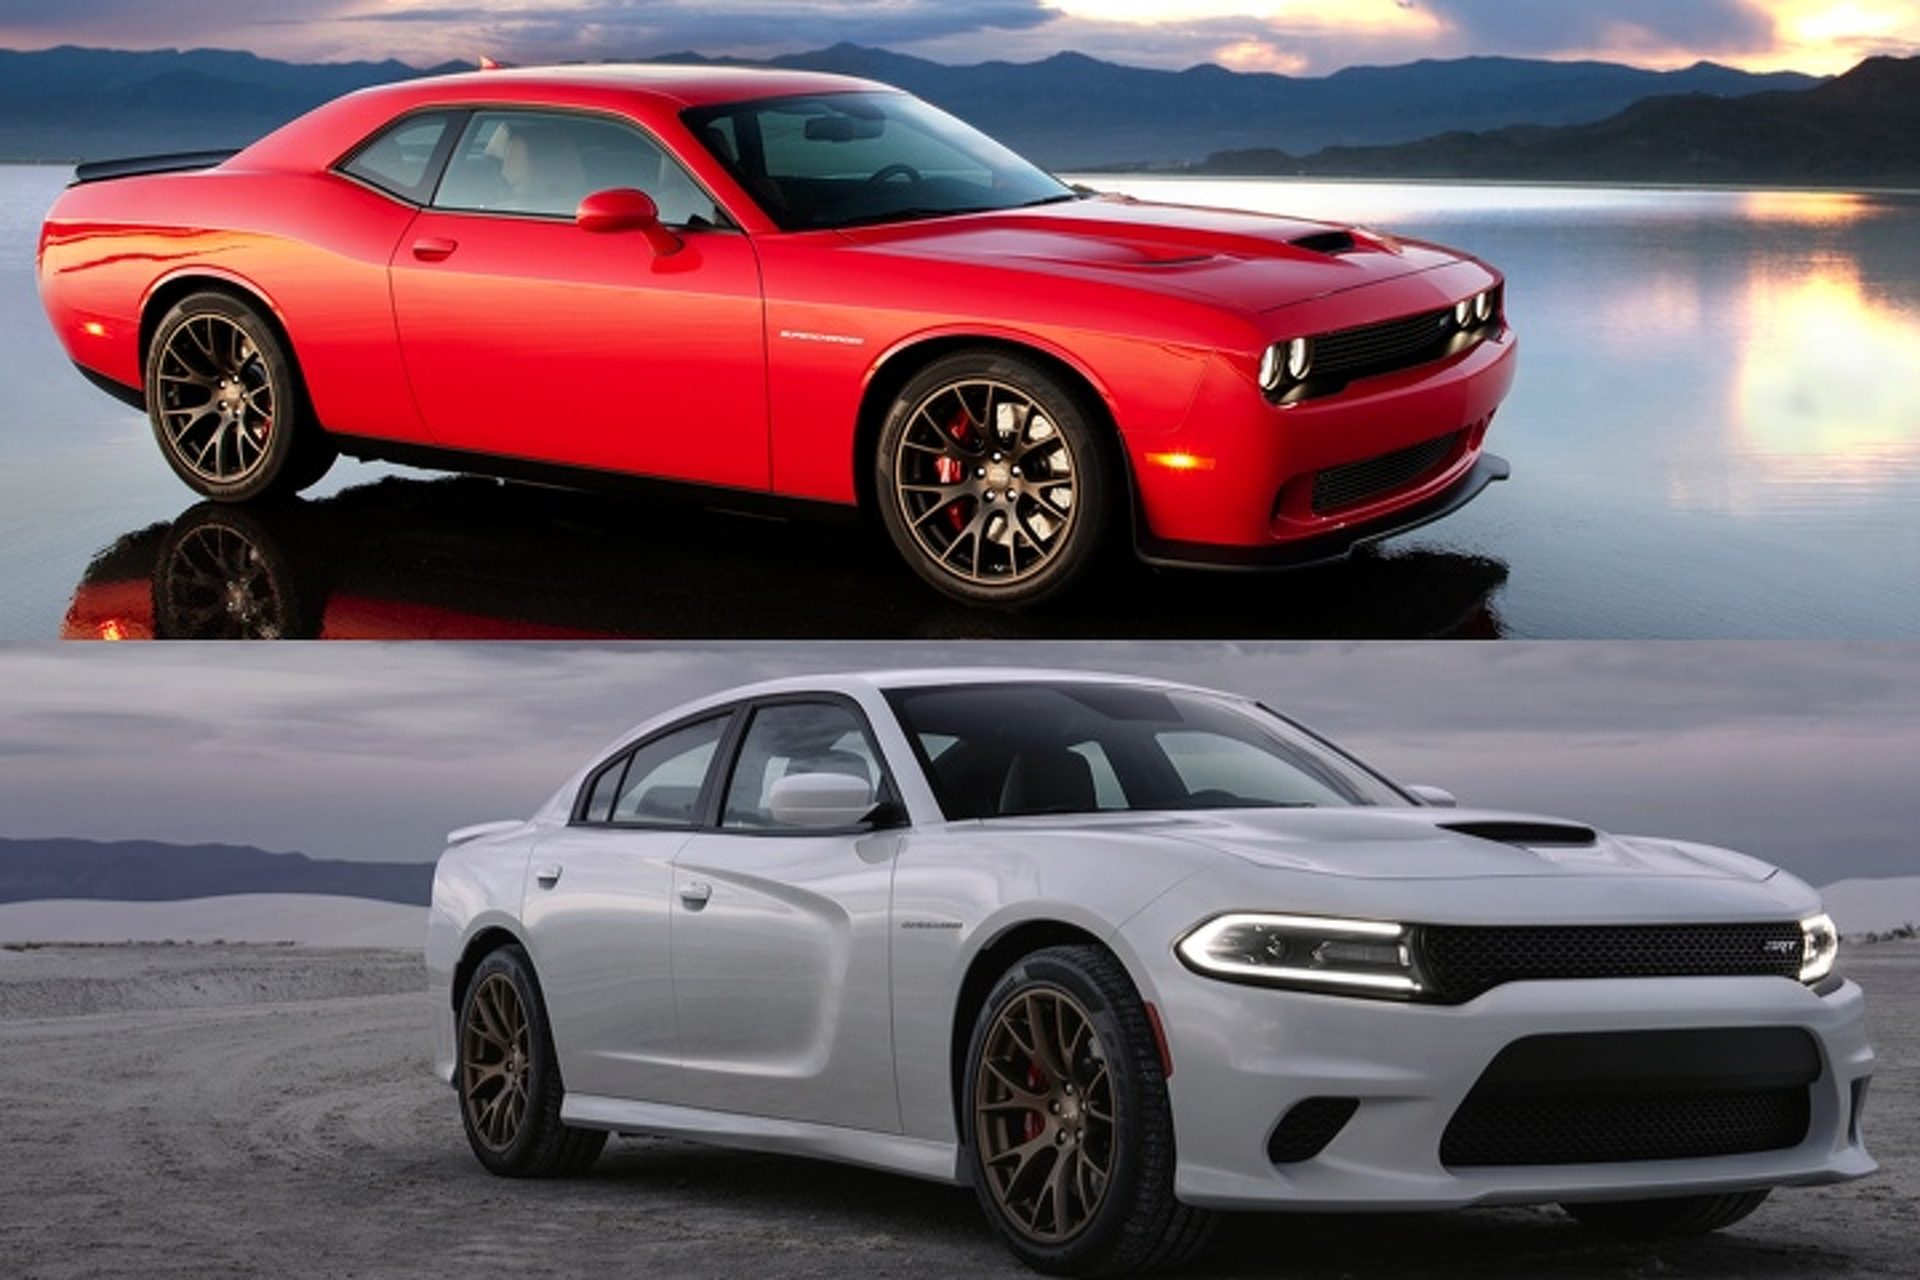 Charger Vs Challenger >> Dodge Charger Hellcat Vs Challenger Hellcat Which Would You